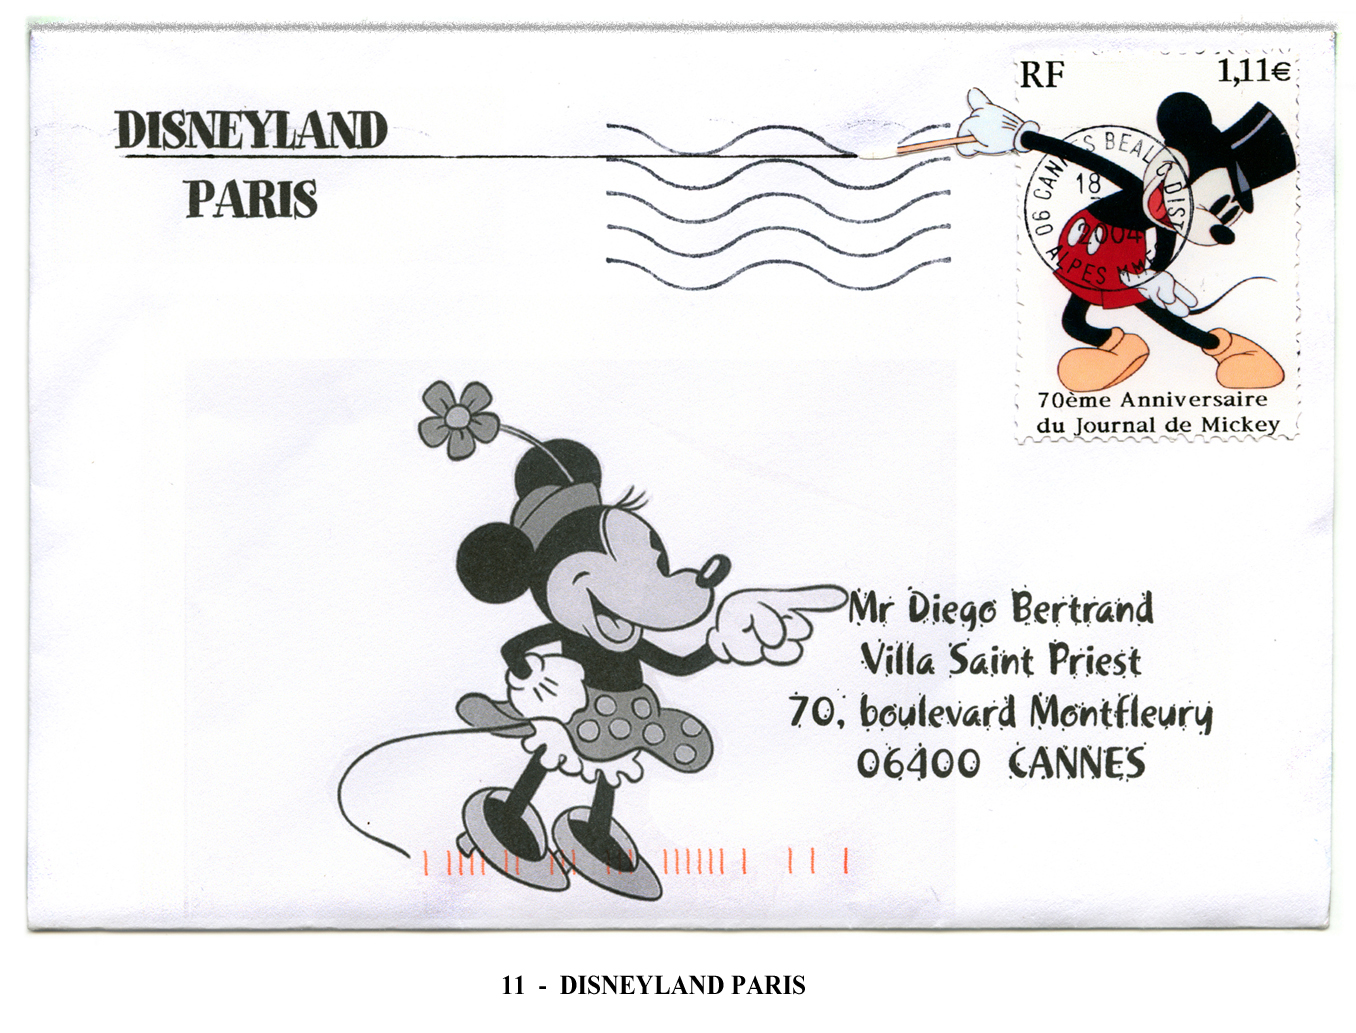 11 - DISNEYLAND PARIS.jpg